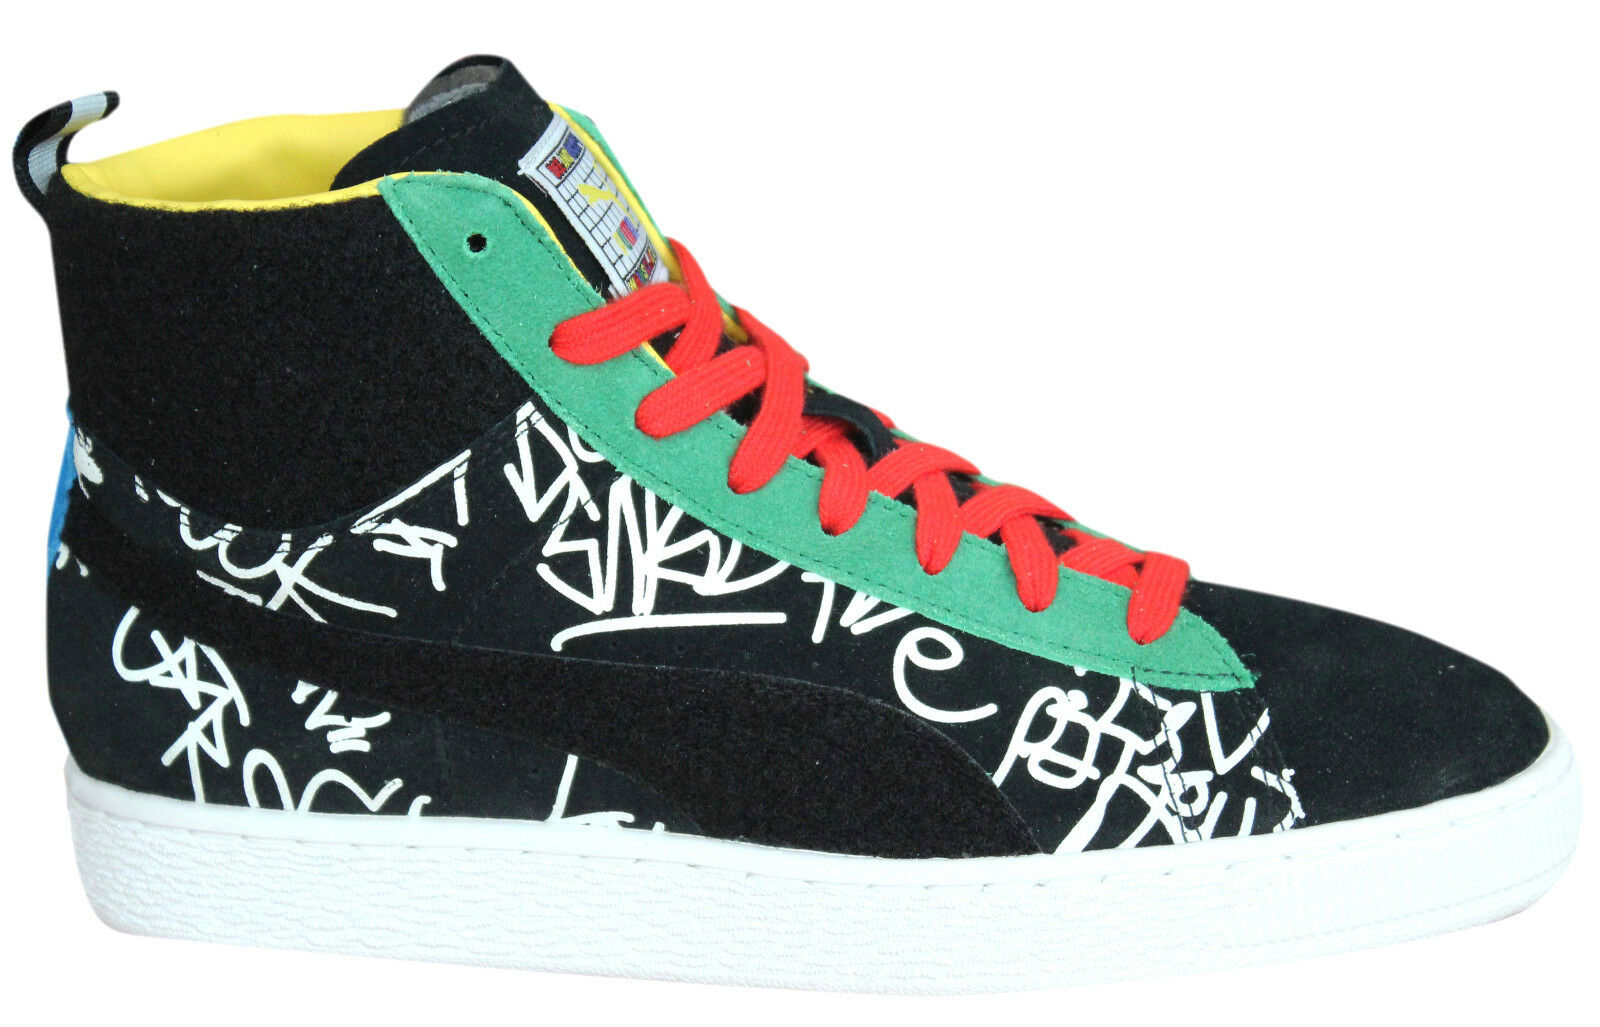 Puma Basket Mid Dee homme & Ricky Big ABC homme Dee Trainers Lace Up chaussures 361499 01 U101 c80781